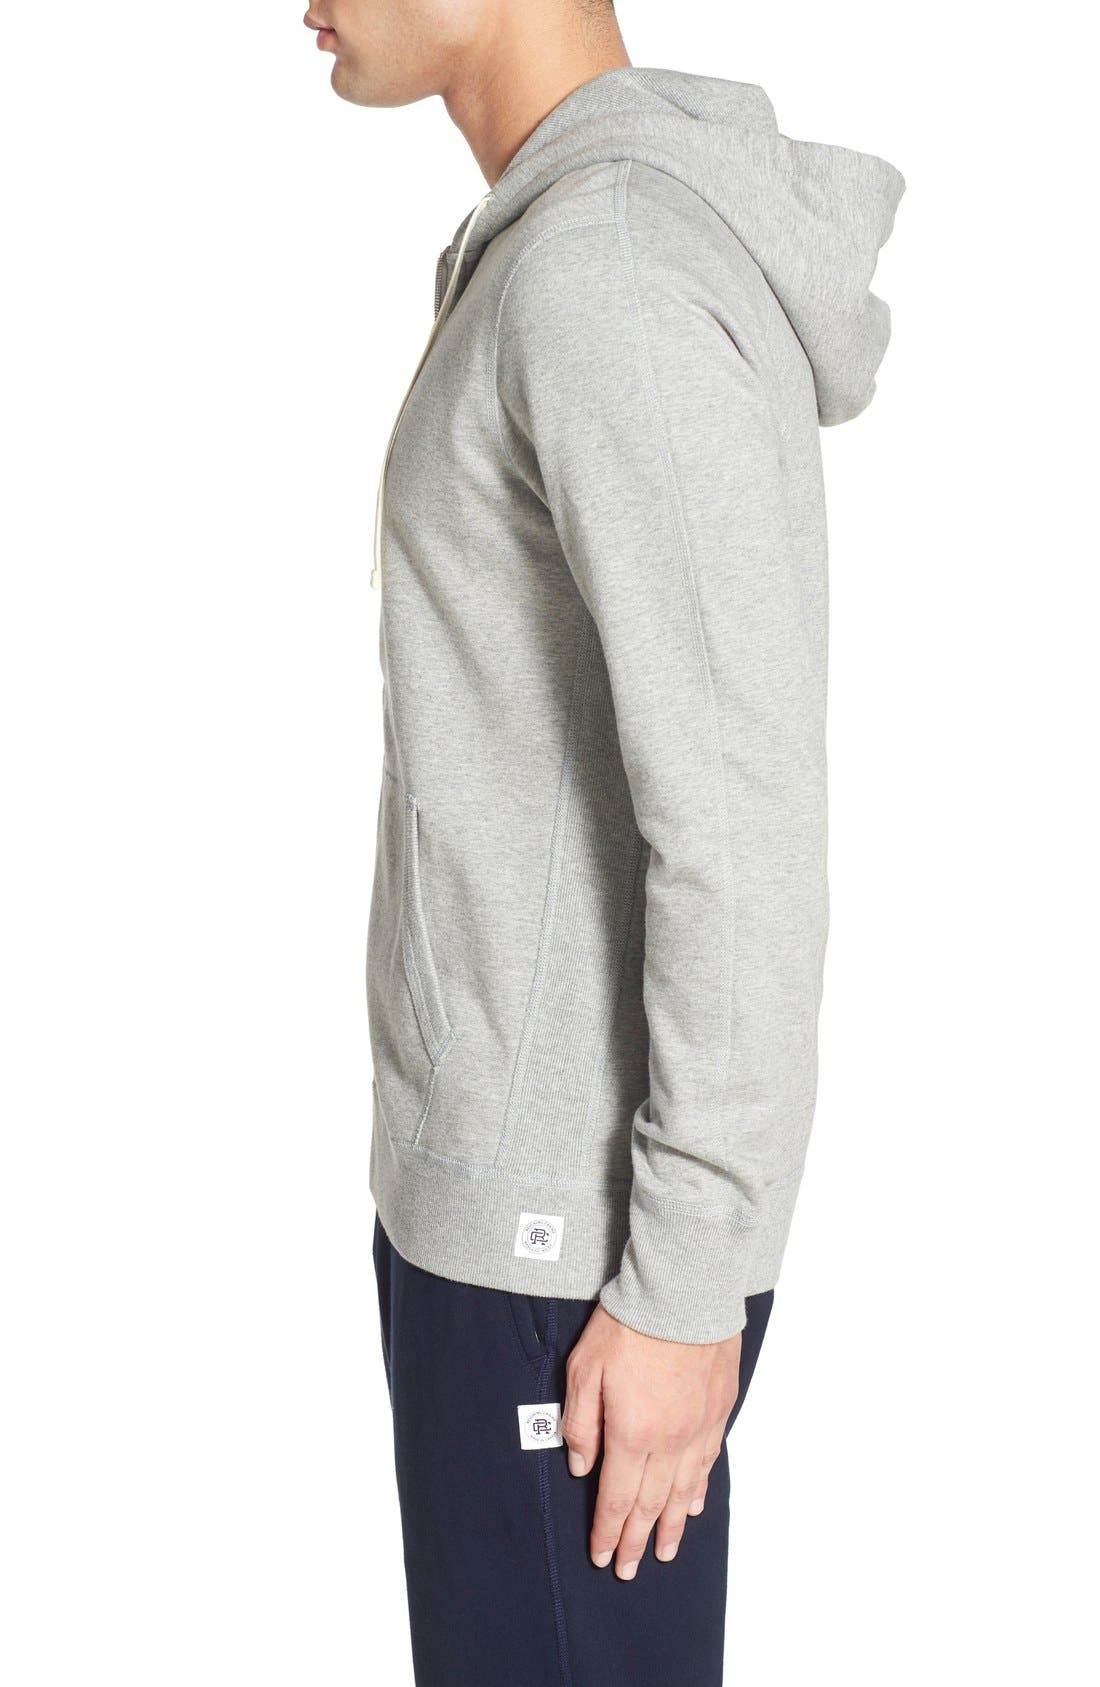 REIGNING CHAMP, Trim Fit Full Zip Hoodie, Alternate thumbnail 4, color, HEATHER GREY